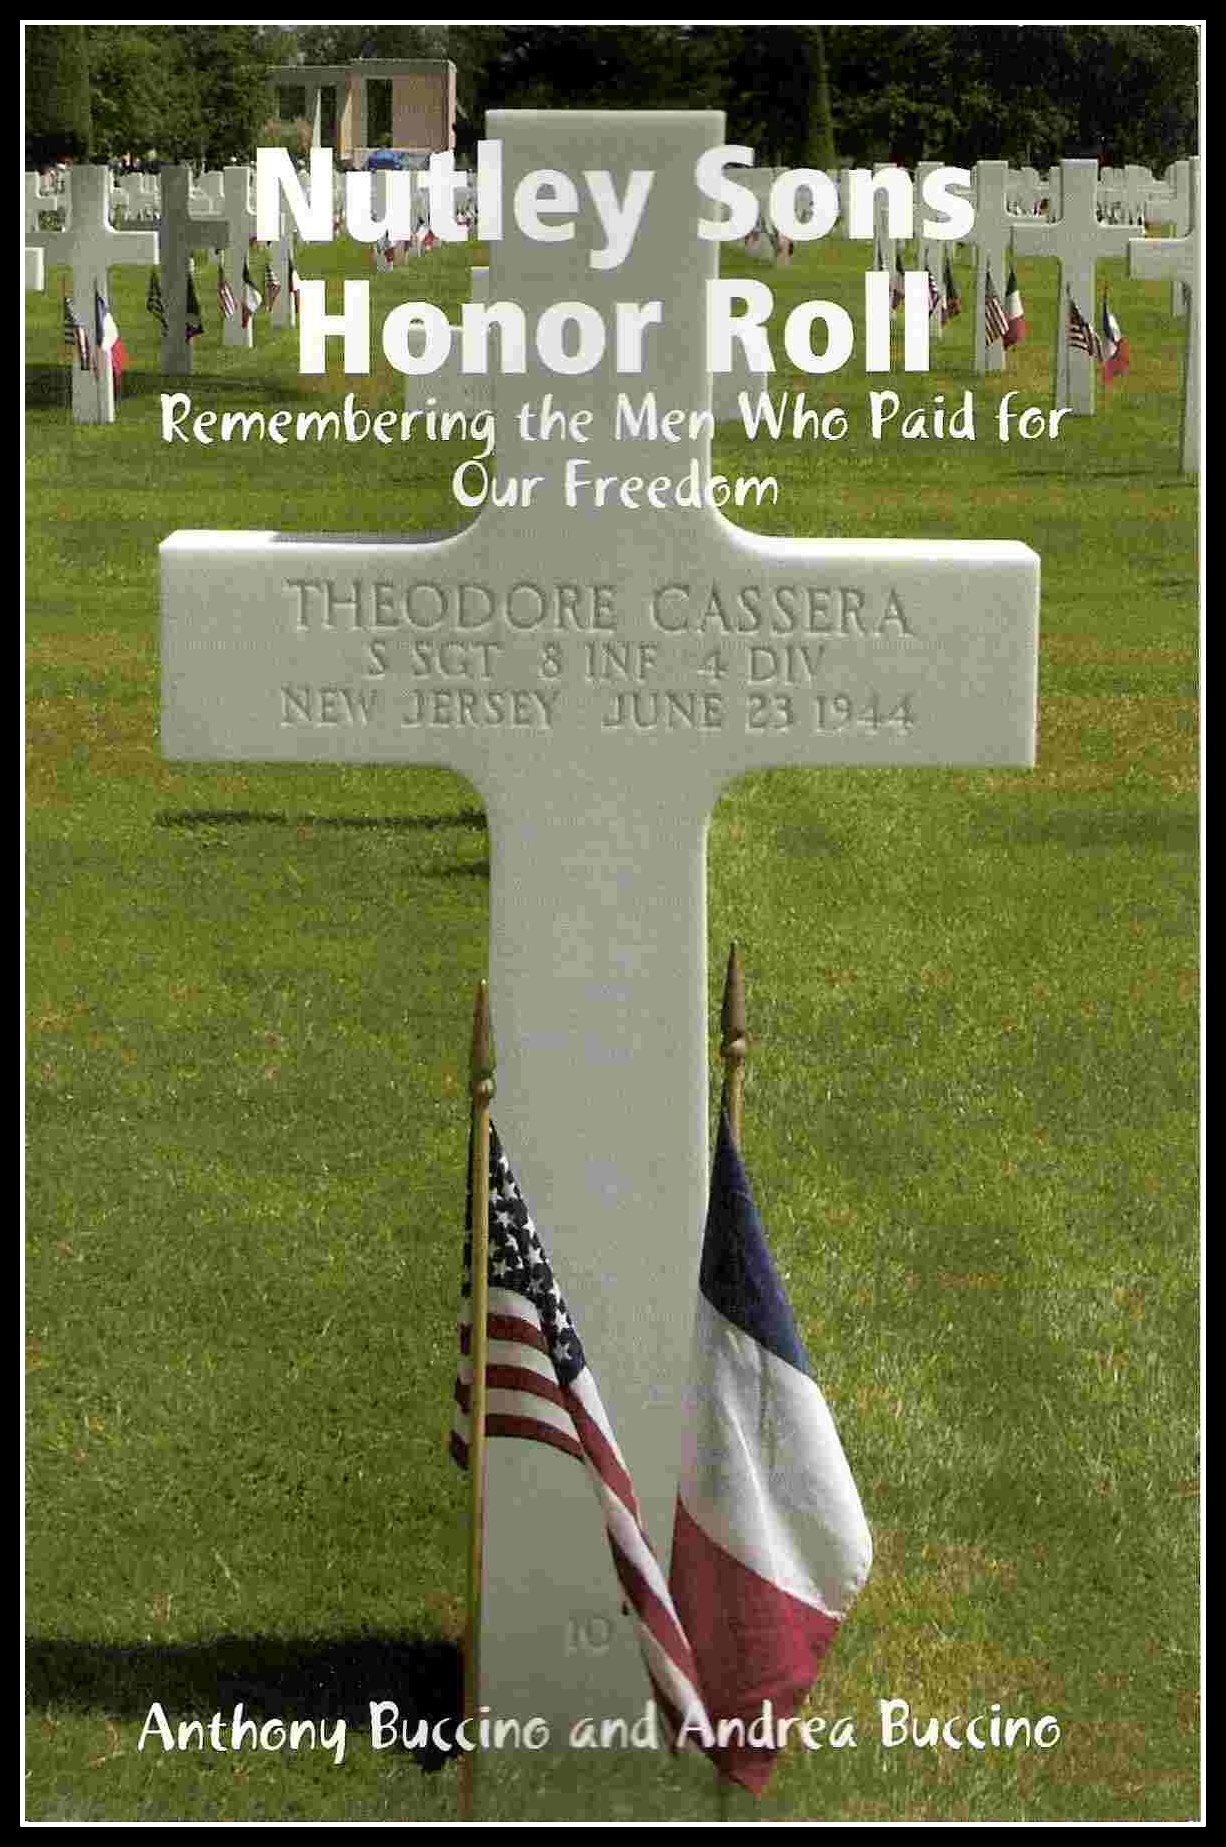 Nutley Sons Honor Roll - remembering the men who paid for our freedom